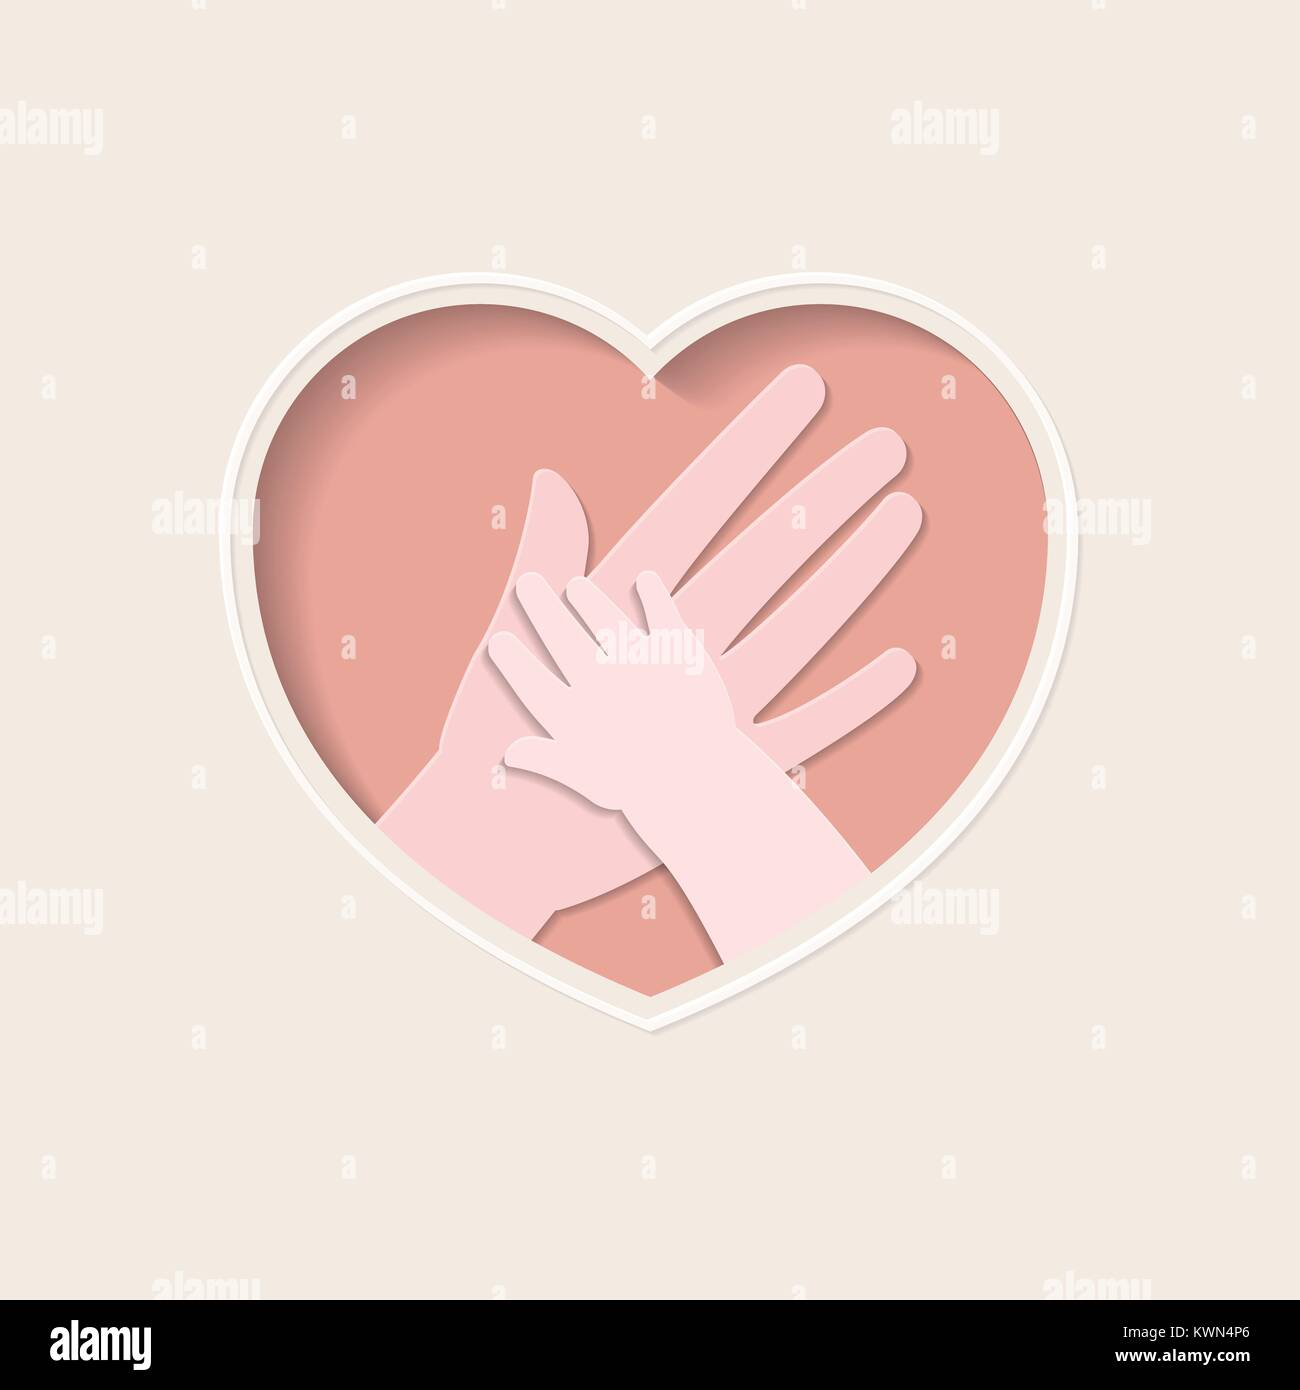 Big hand holding small one represent mother and baby, in pink heart shaped frame paper art greeting card - Stock Vector